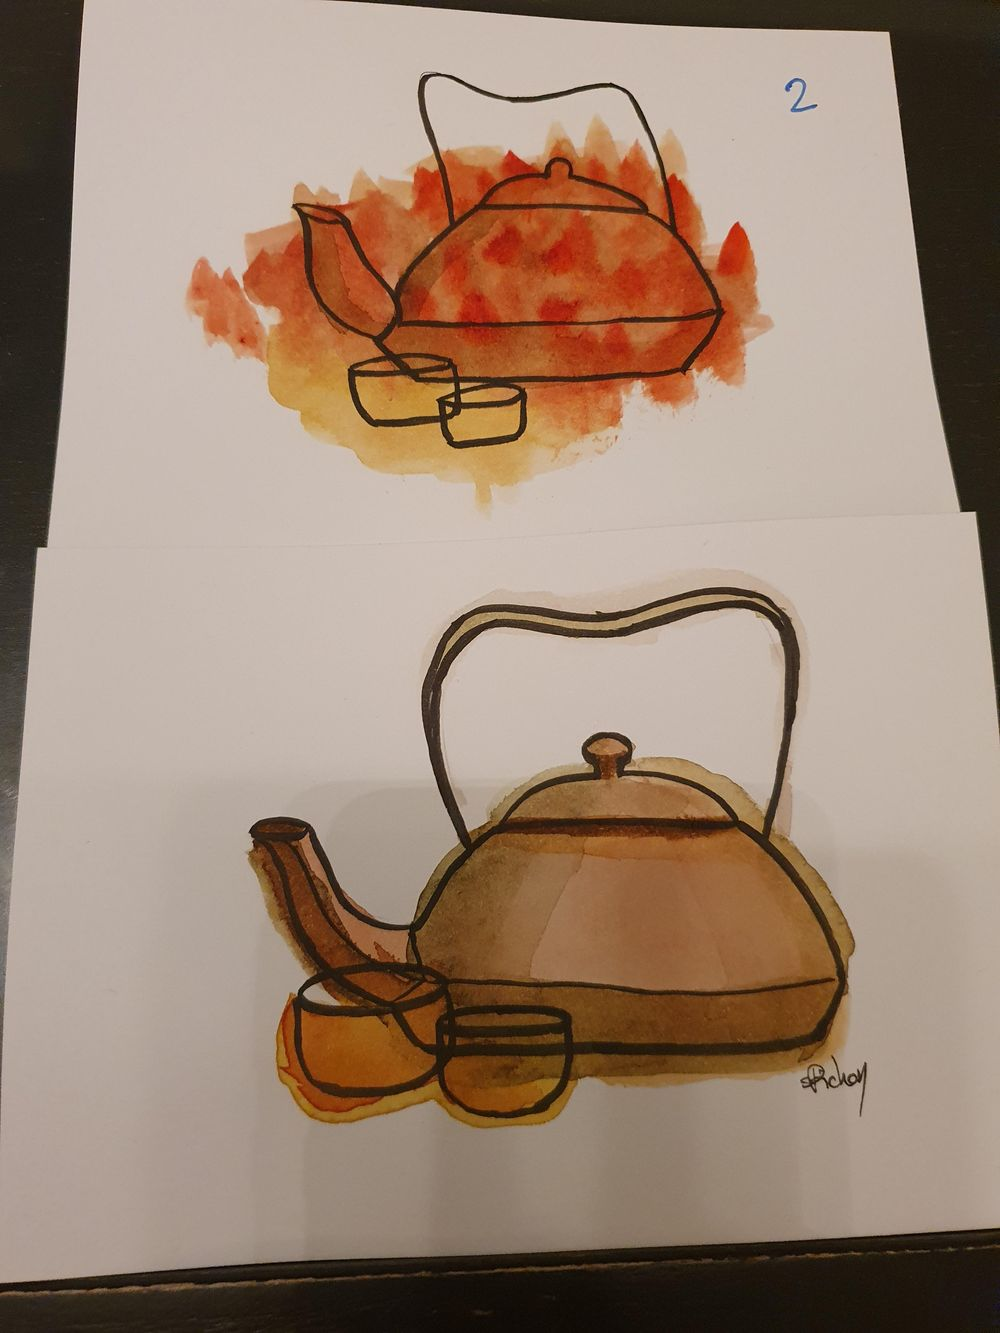 Teapot - image 2 - student project